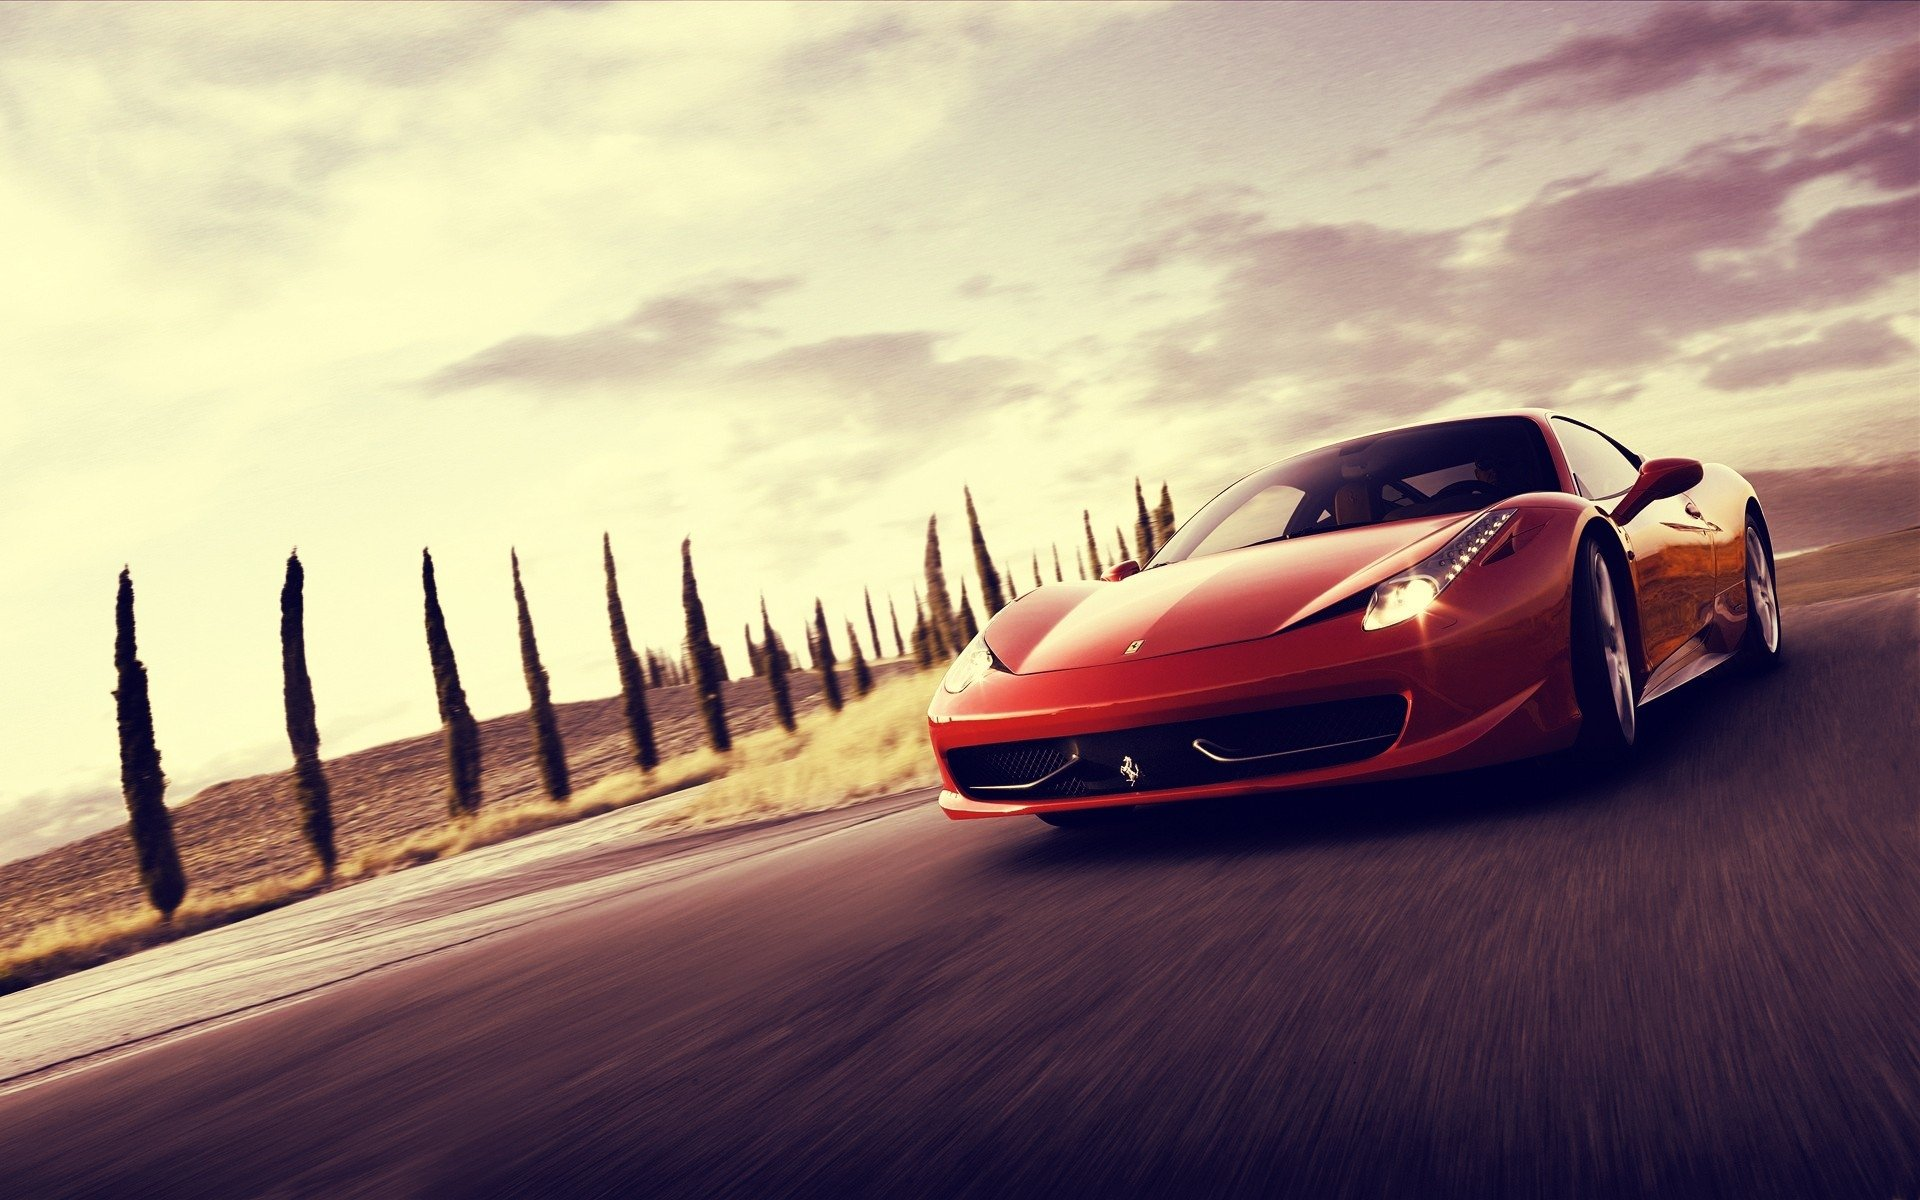 Vehicles - Ferrari  Red Car Sport Car Ferrari 458 Wallpaper